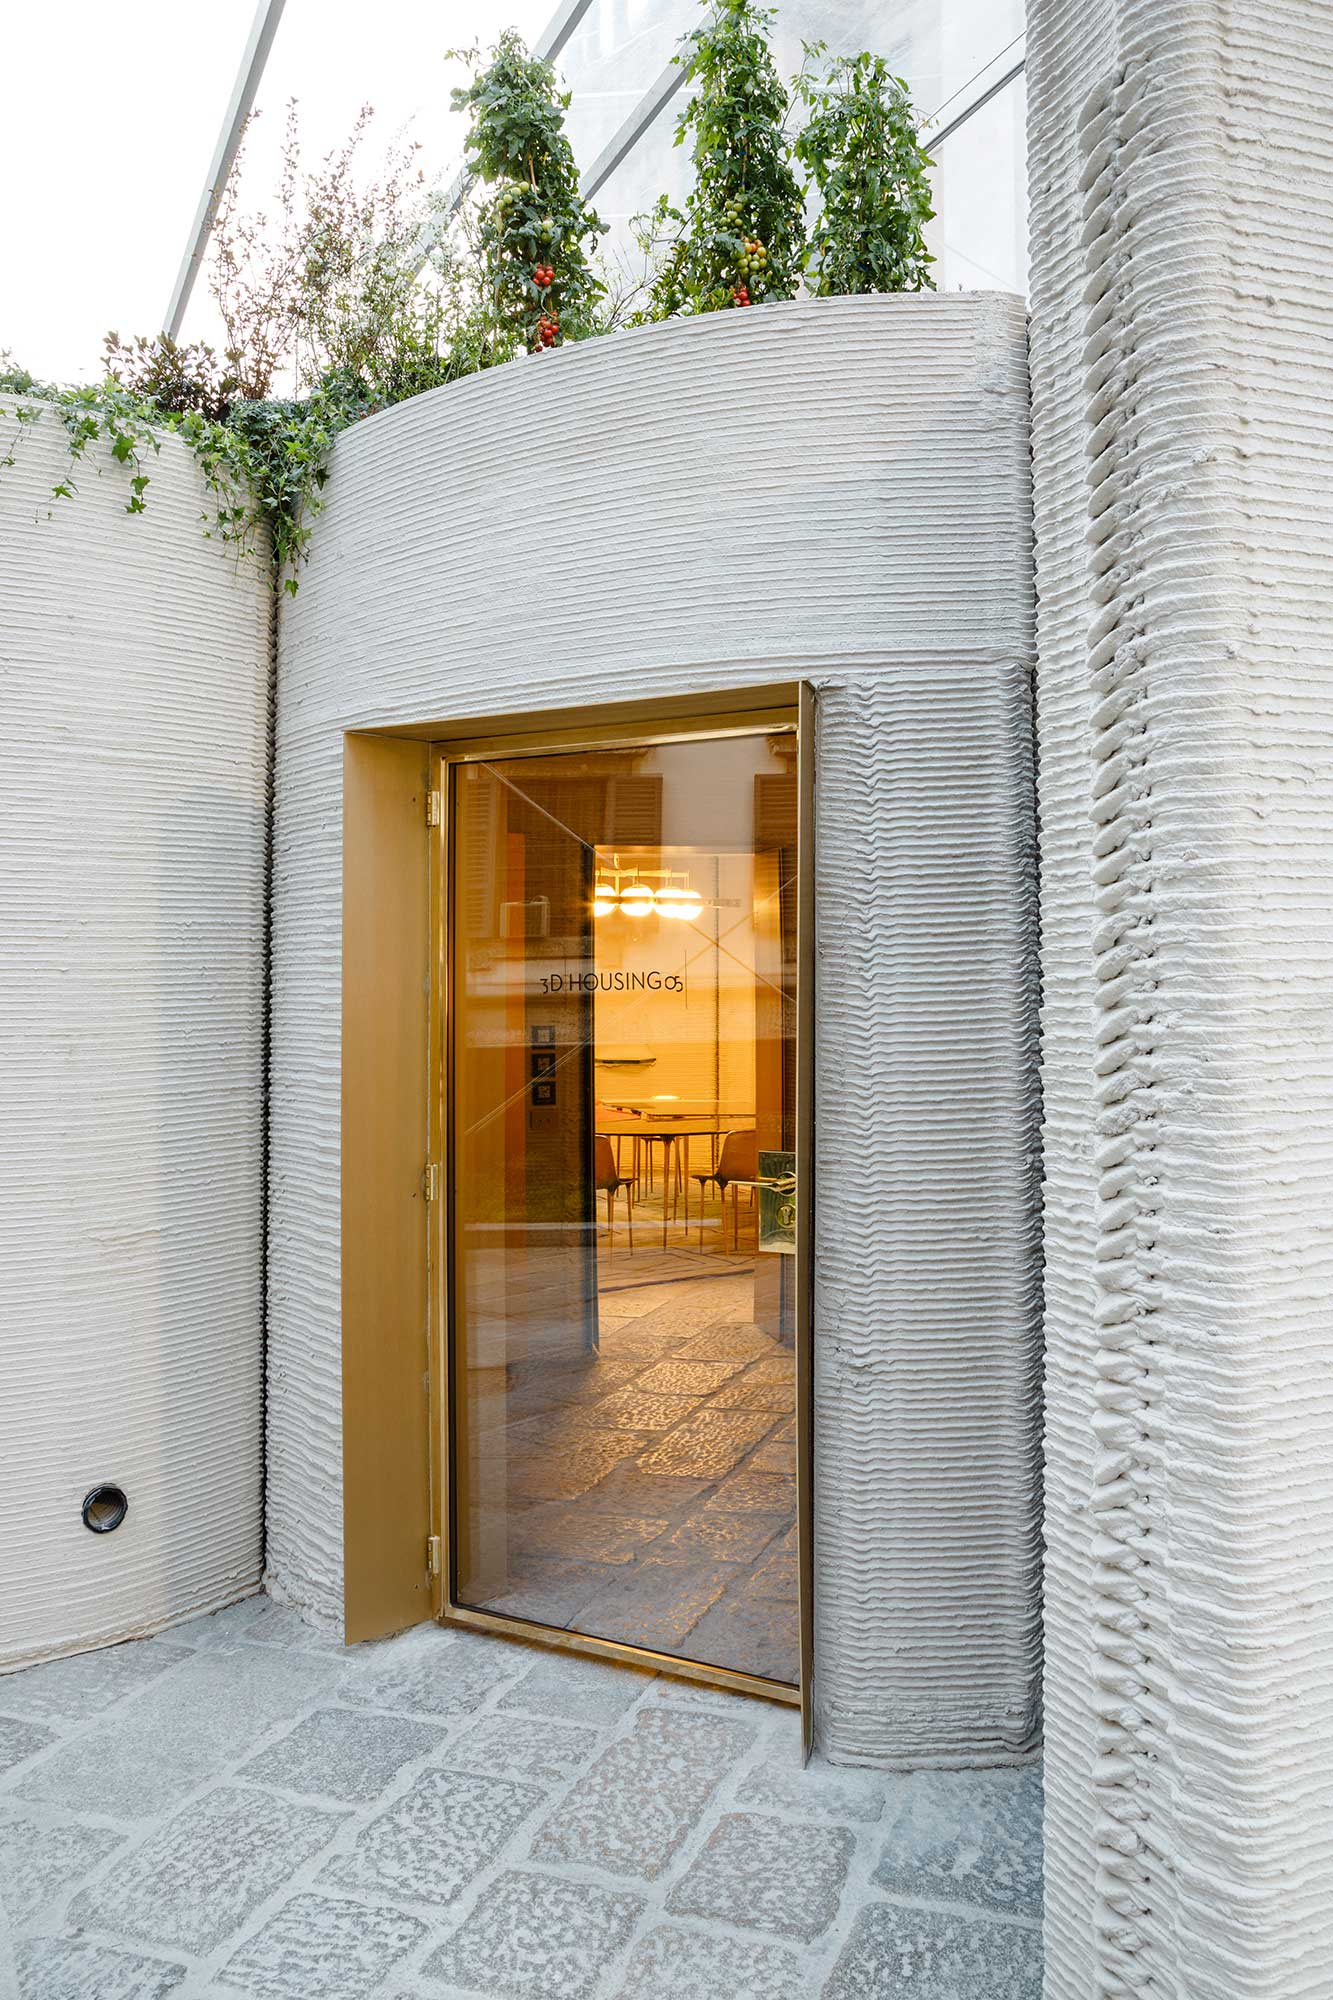 3D Printed House by Massamiliano Locatelli's CLS Architetti Revealed in Milan | Yellowtrace